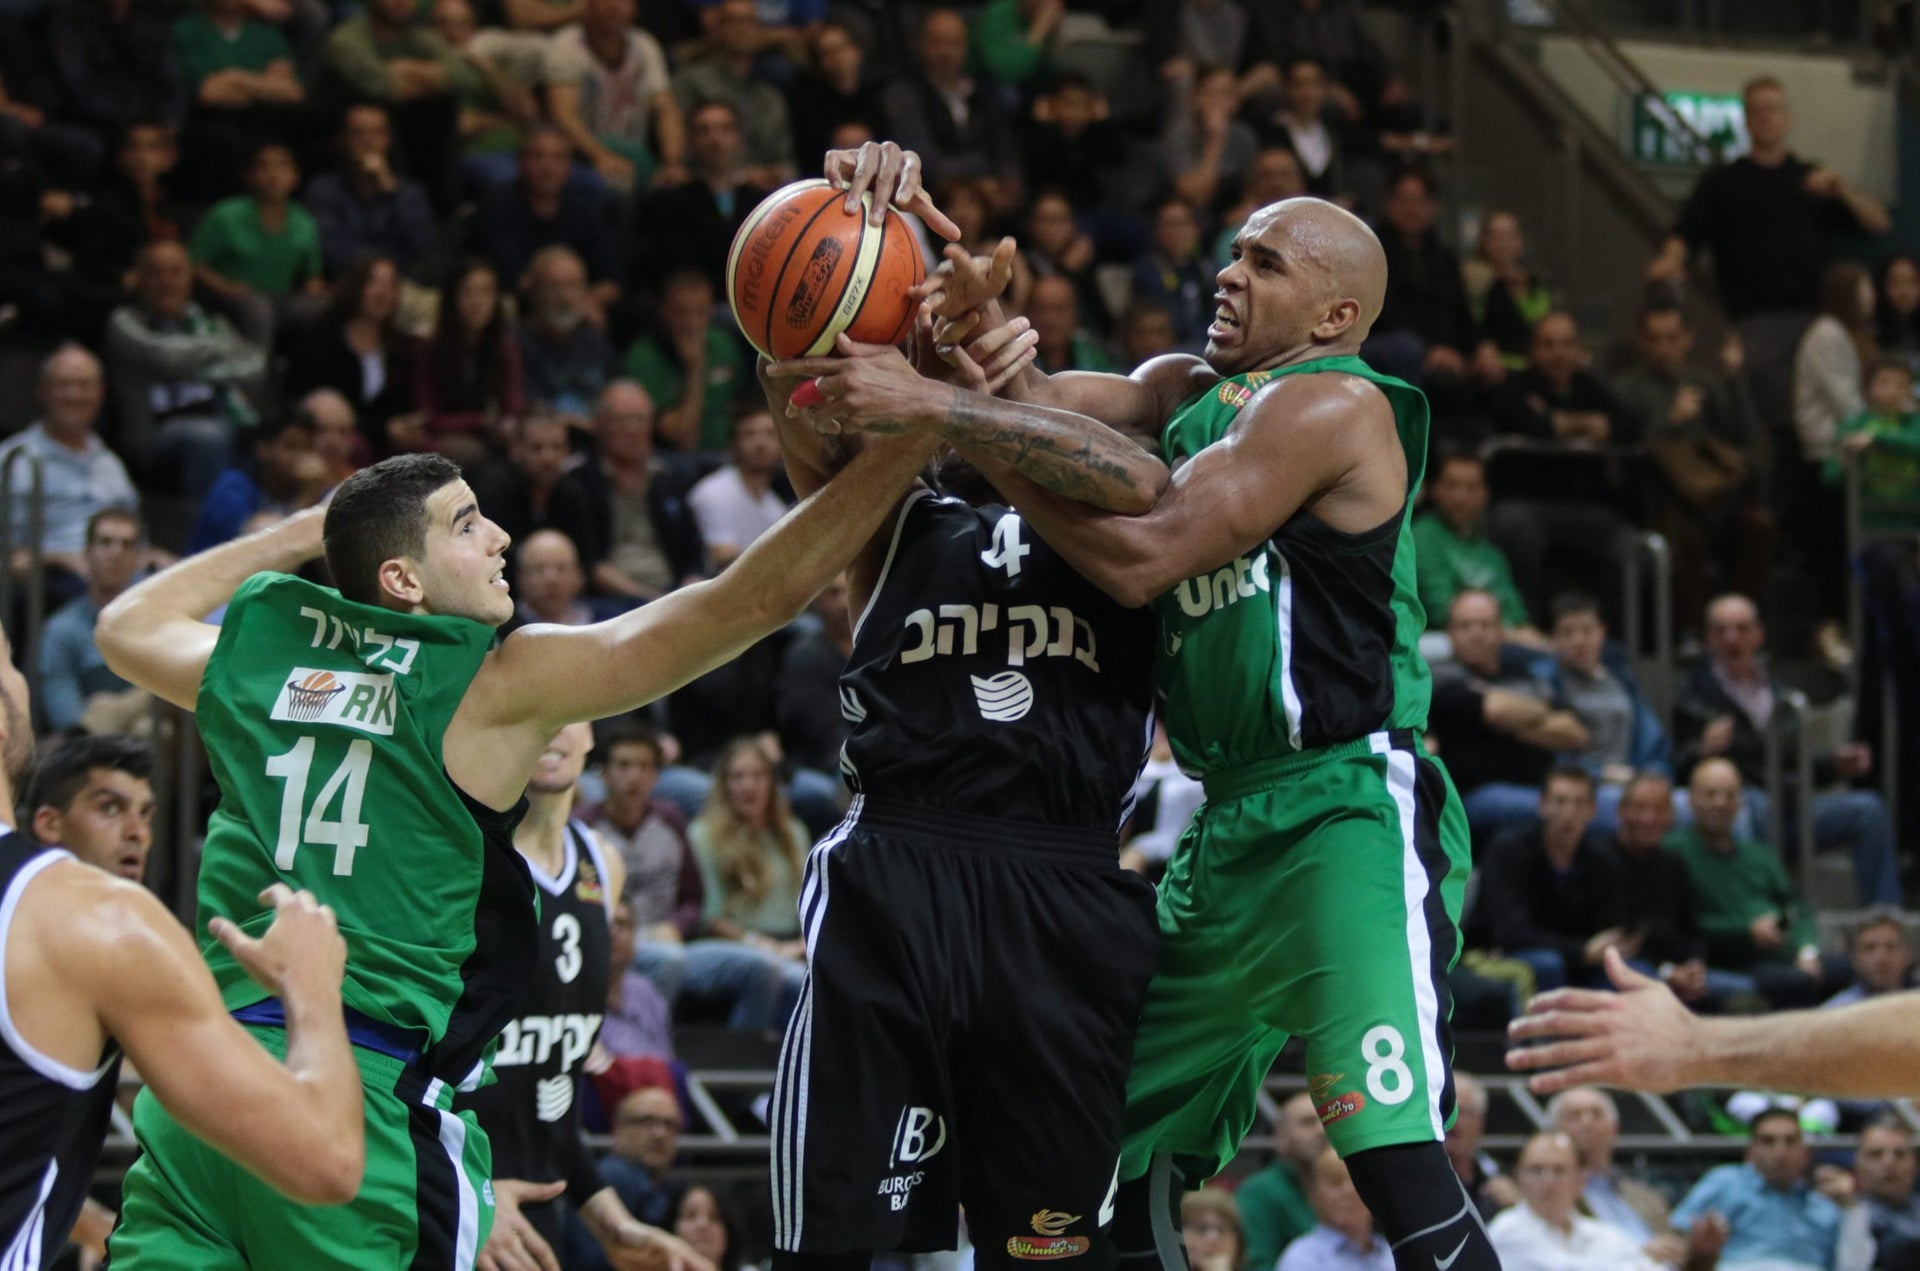 A basketball game between Maccabi Haifa and Hapoel Jerusalem, March 29, 2016.